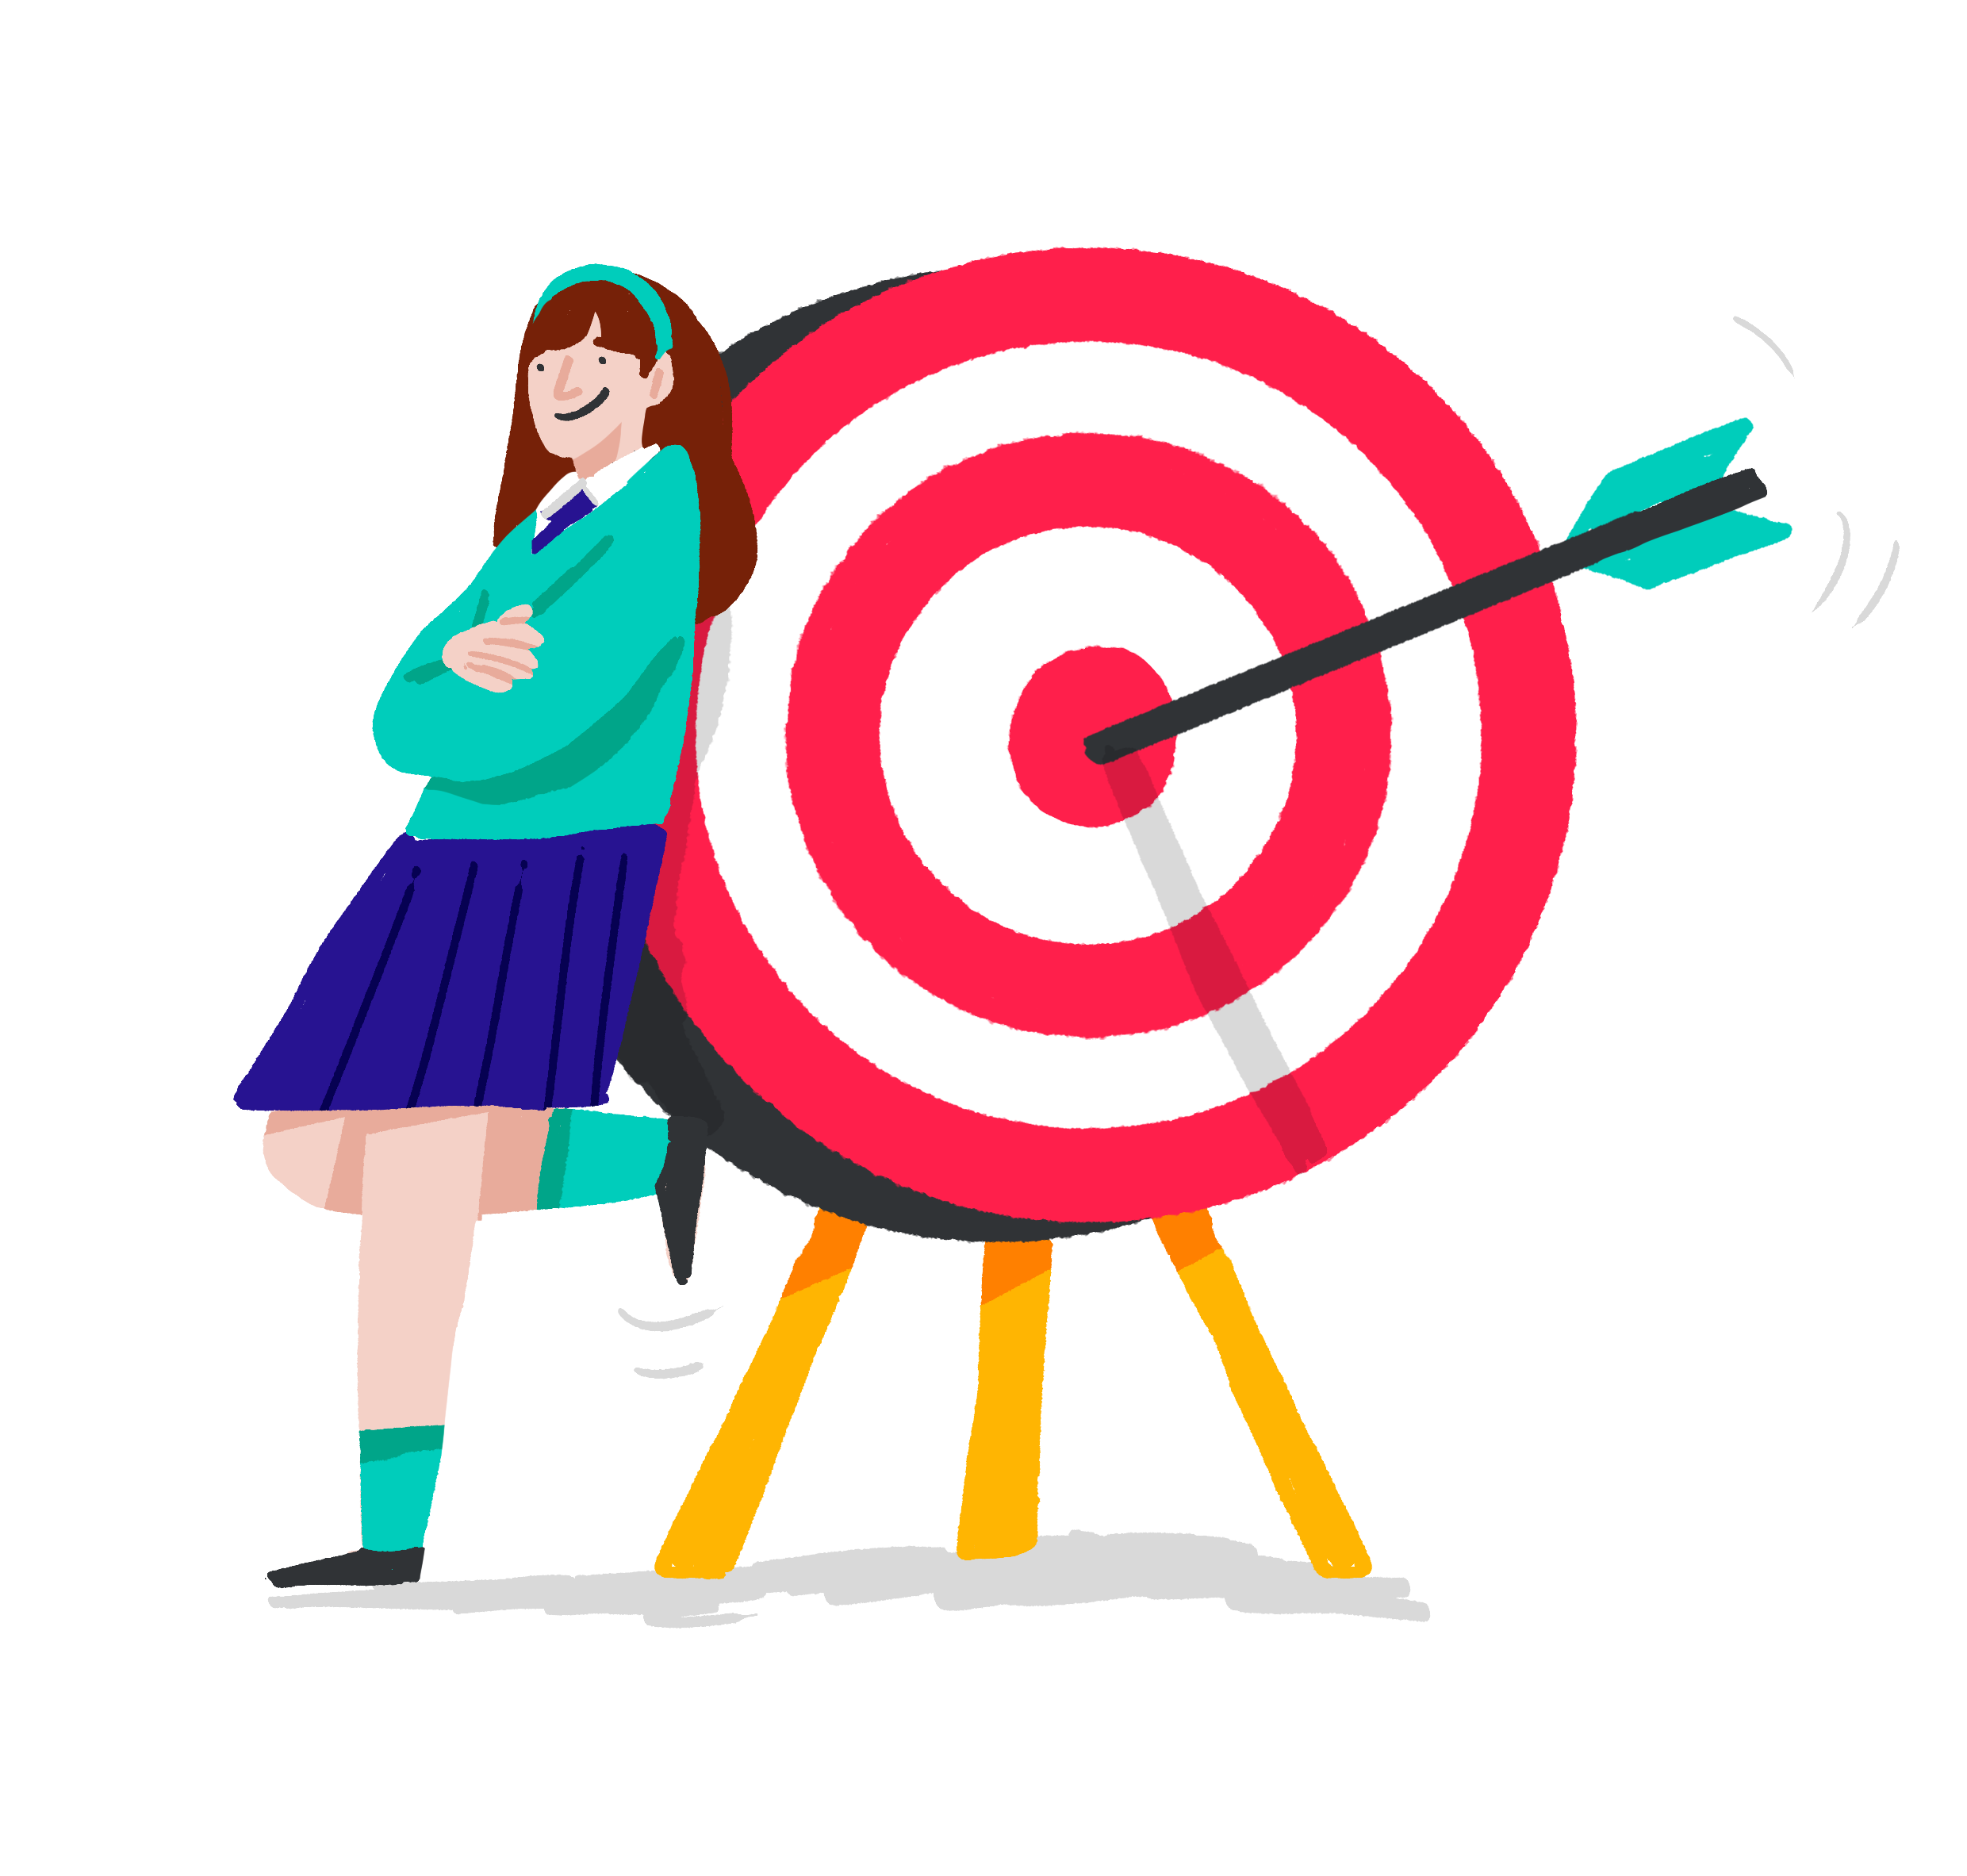 illustration-meet-targets